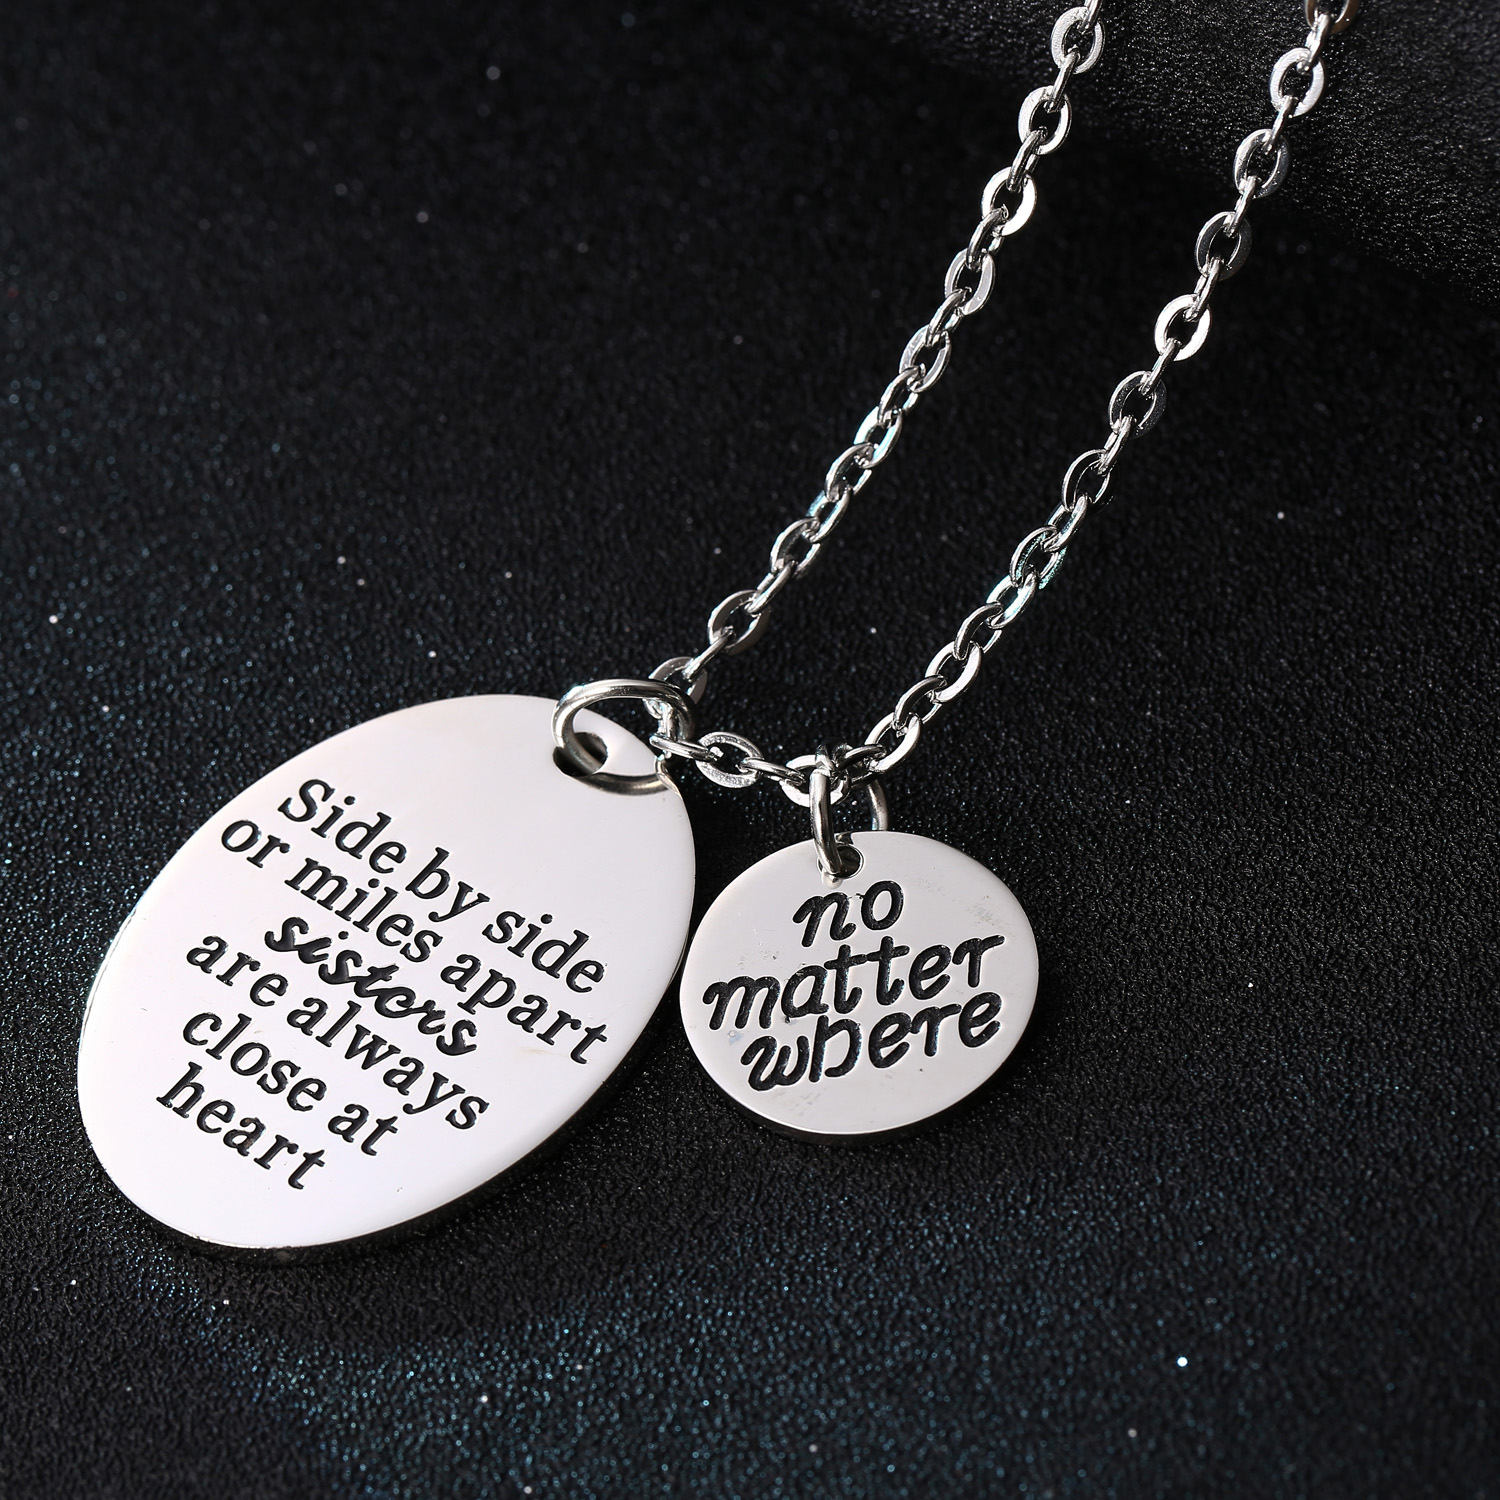 friend itm stamped women chain men quote pendant father hand necklace mother jewelry